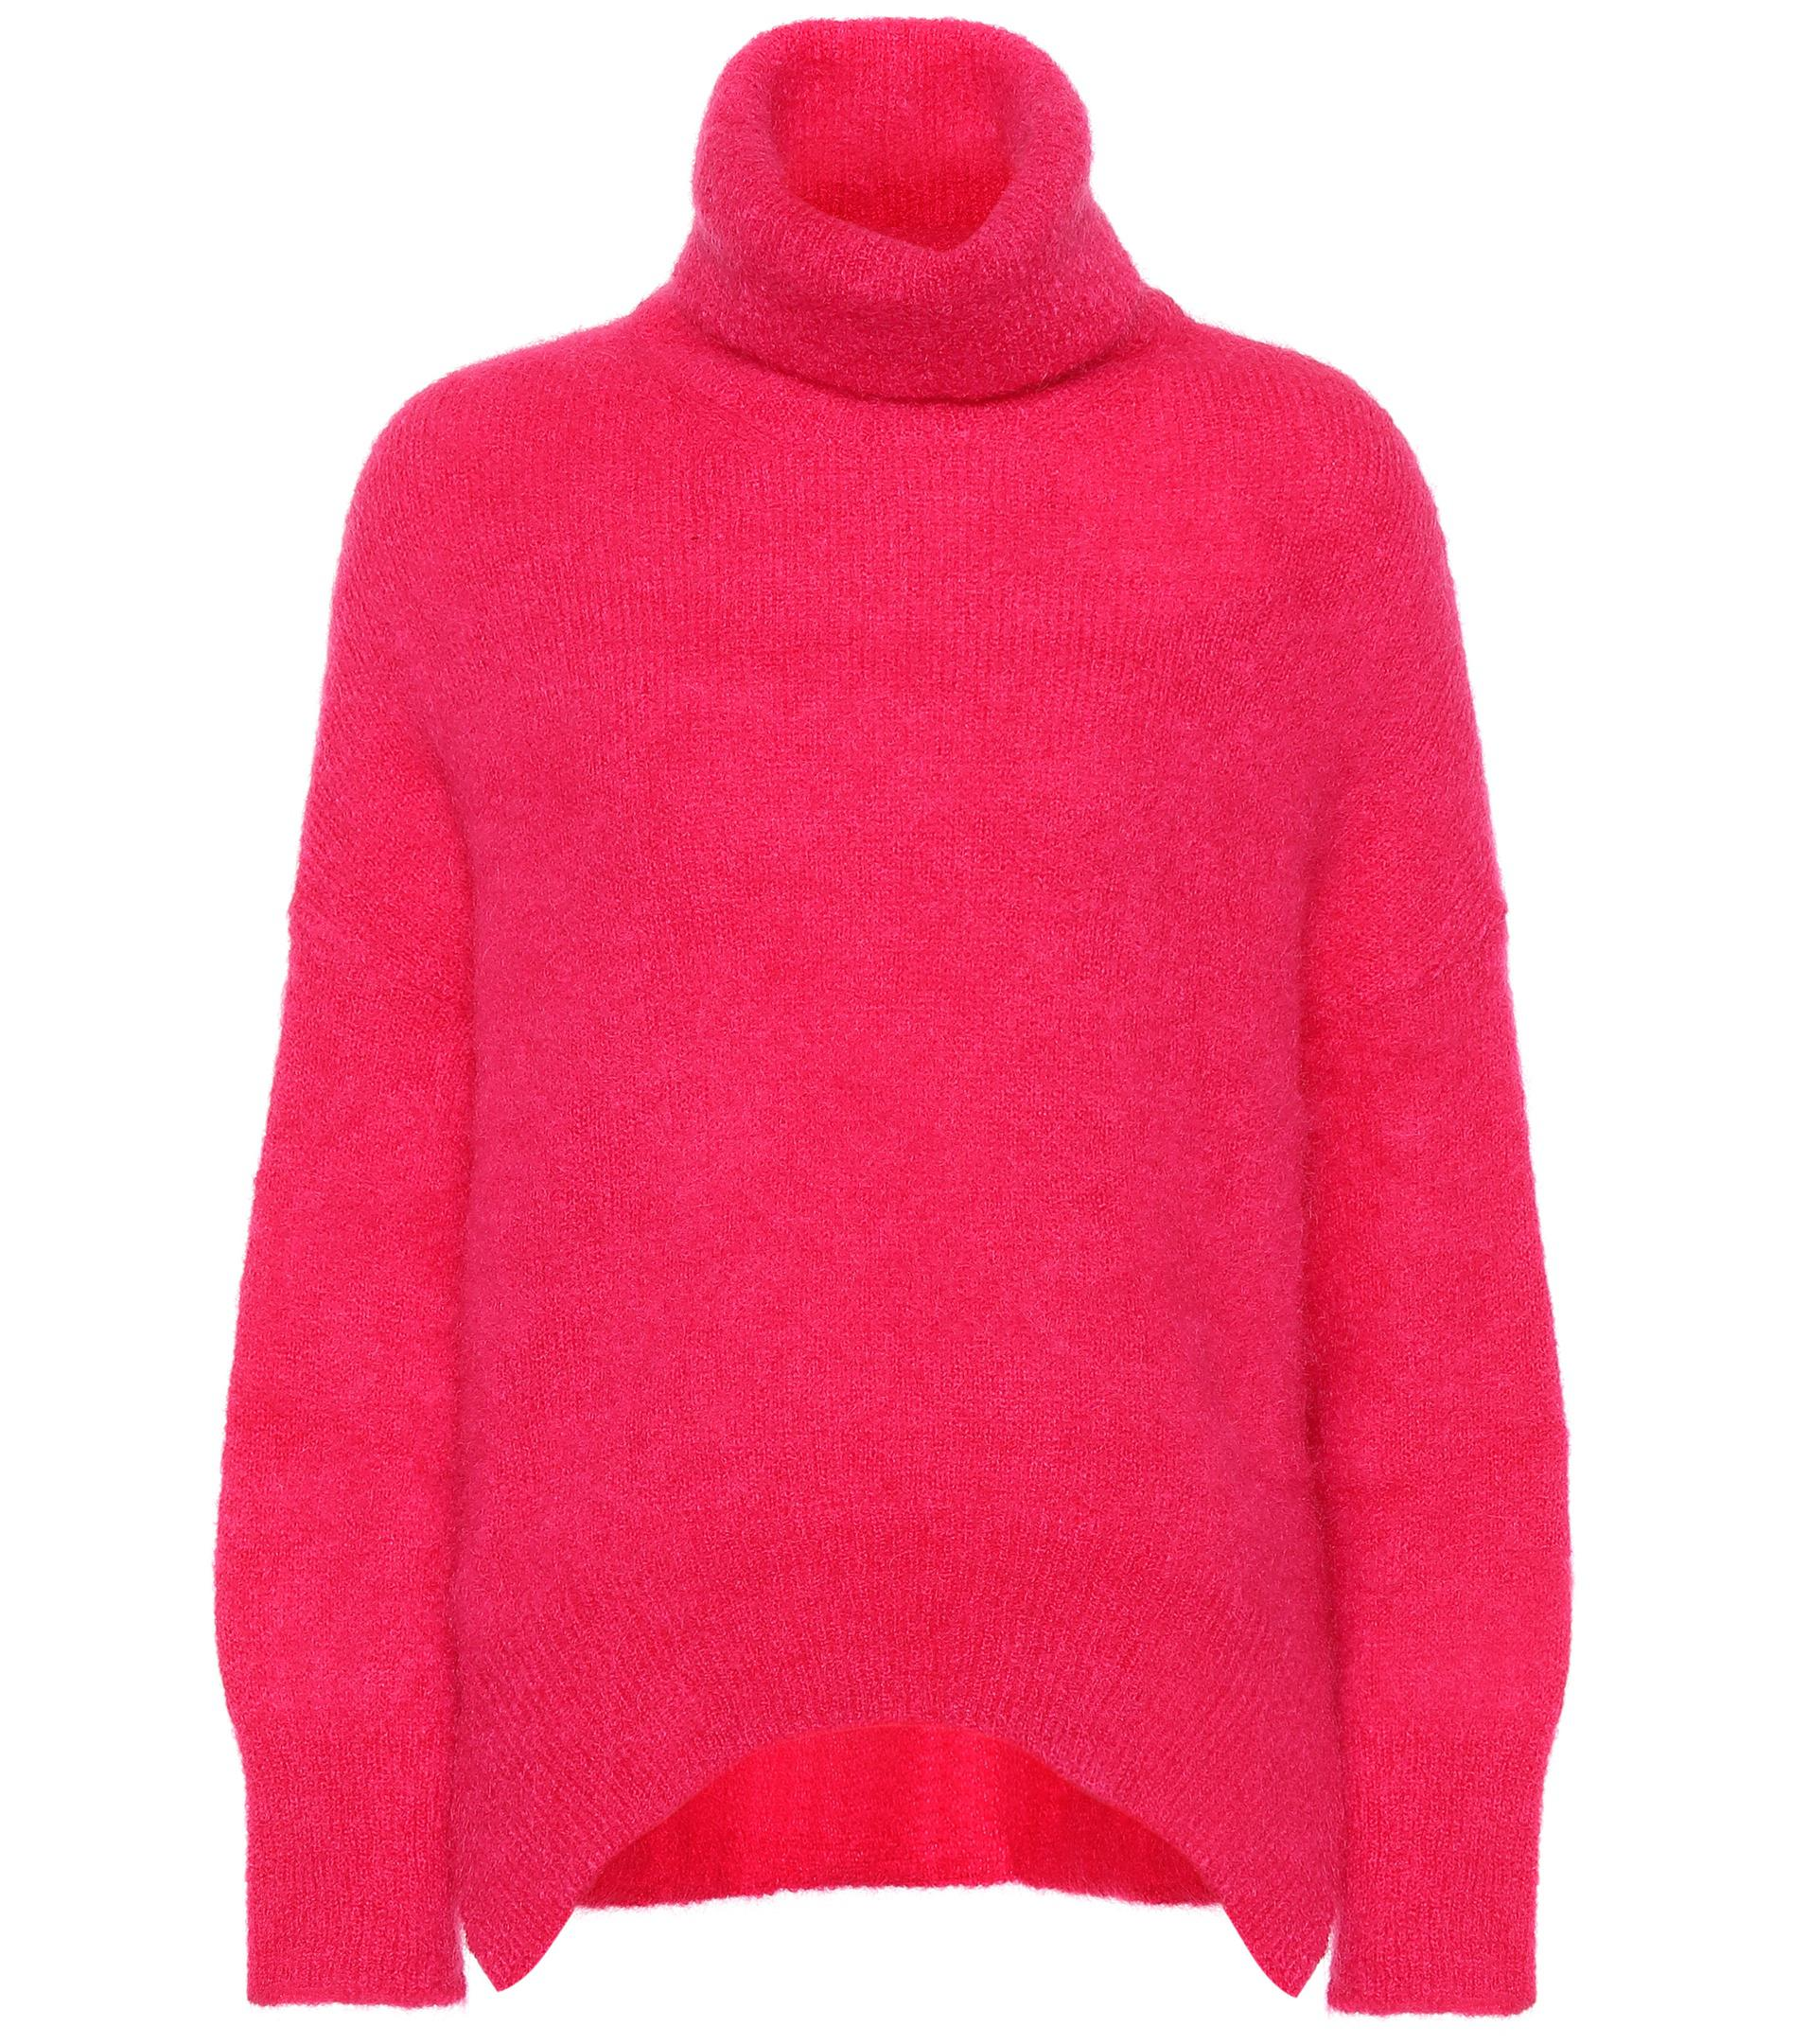 PAUL SMITH Pullover Rostrot Damen & Sweatshirts 100% Wolle